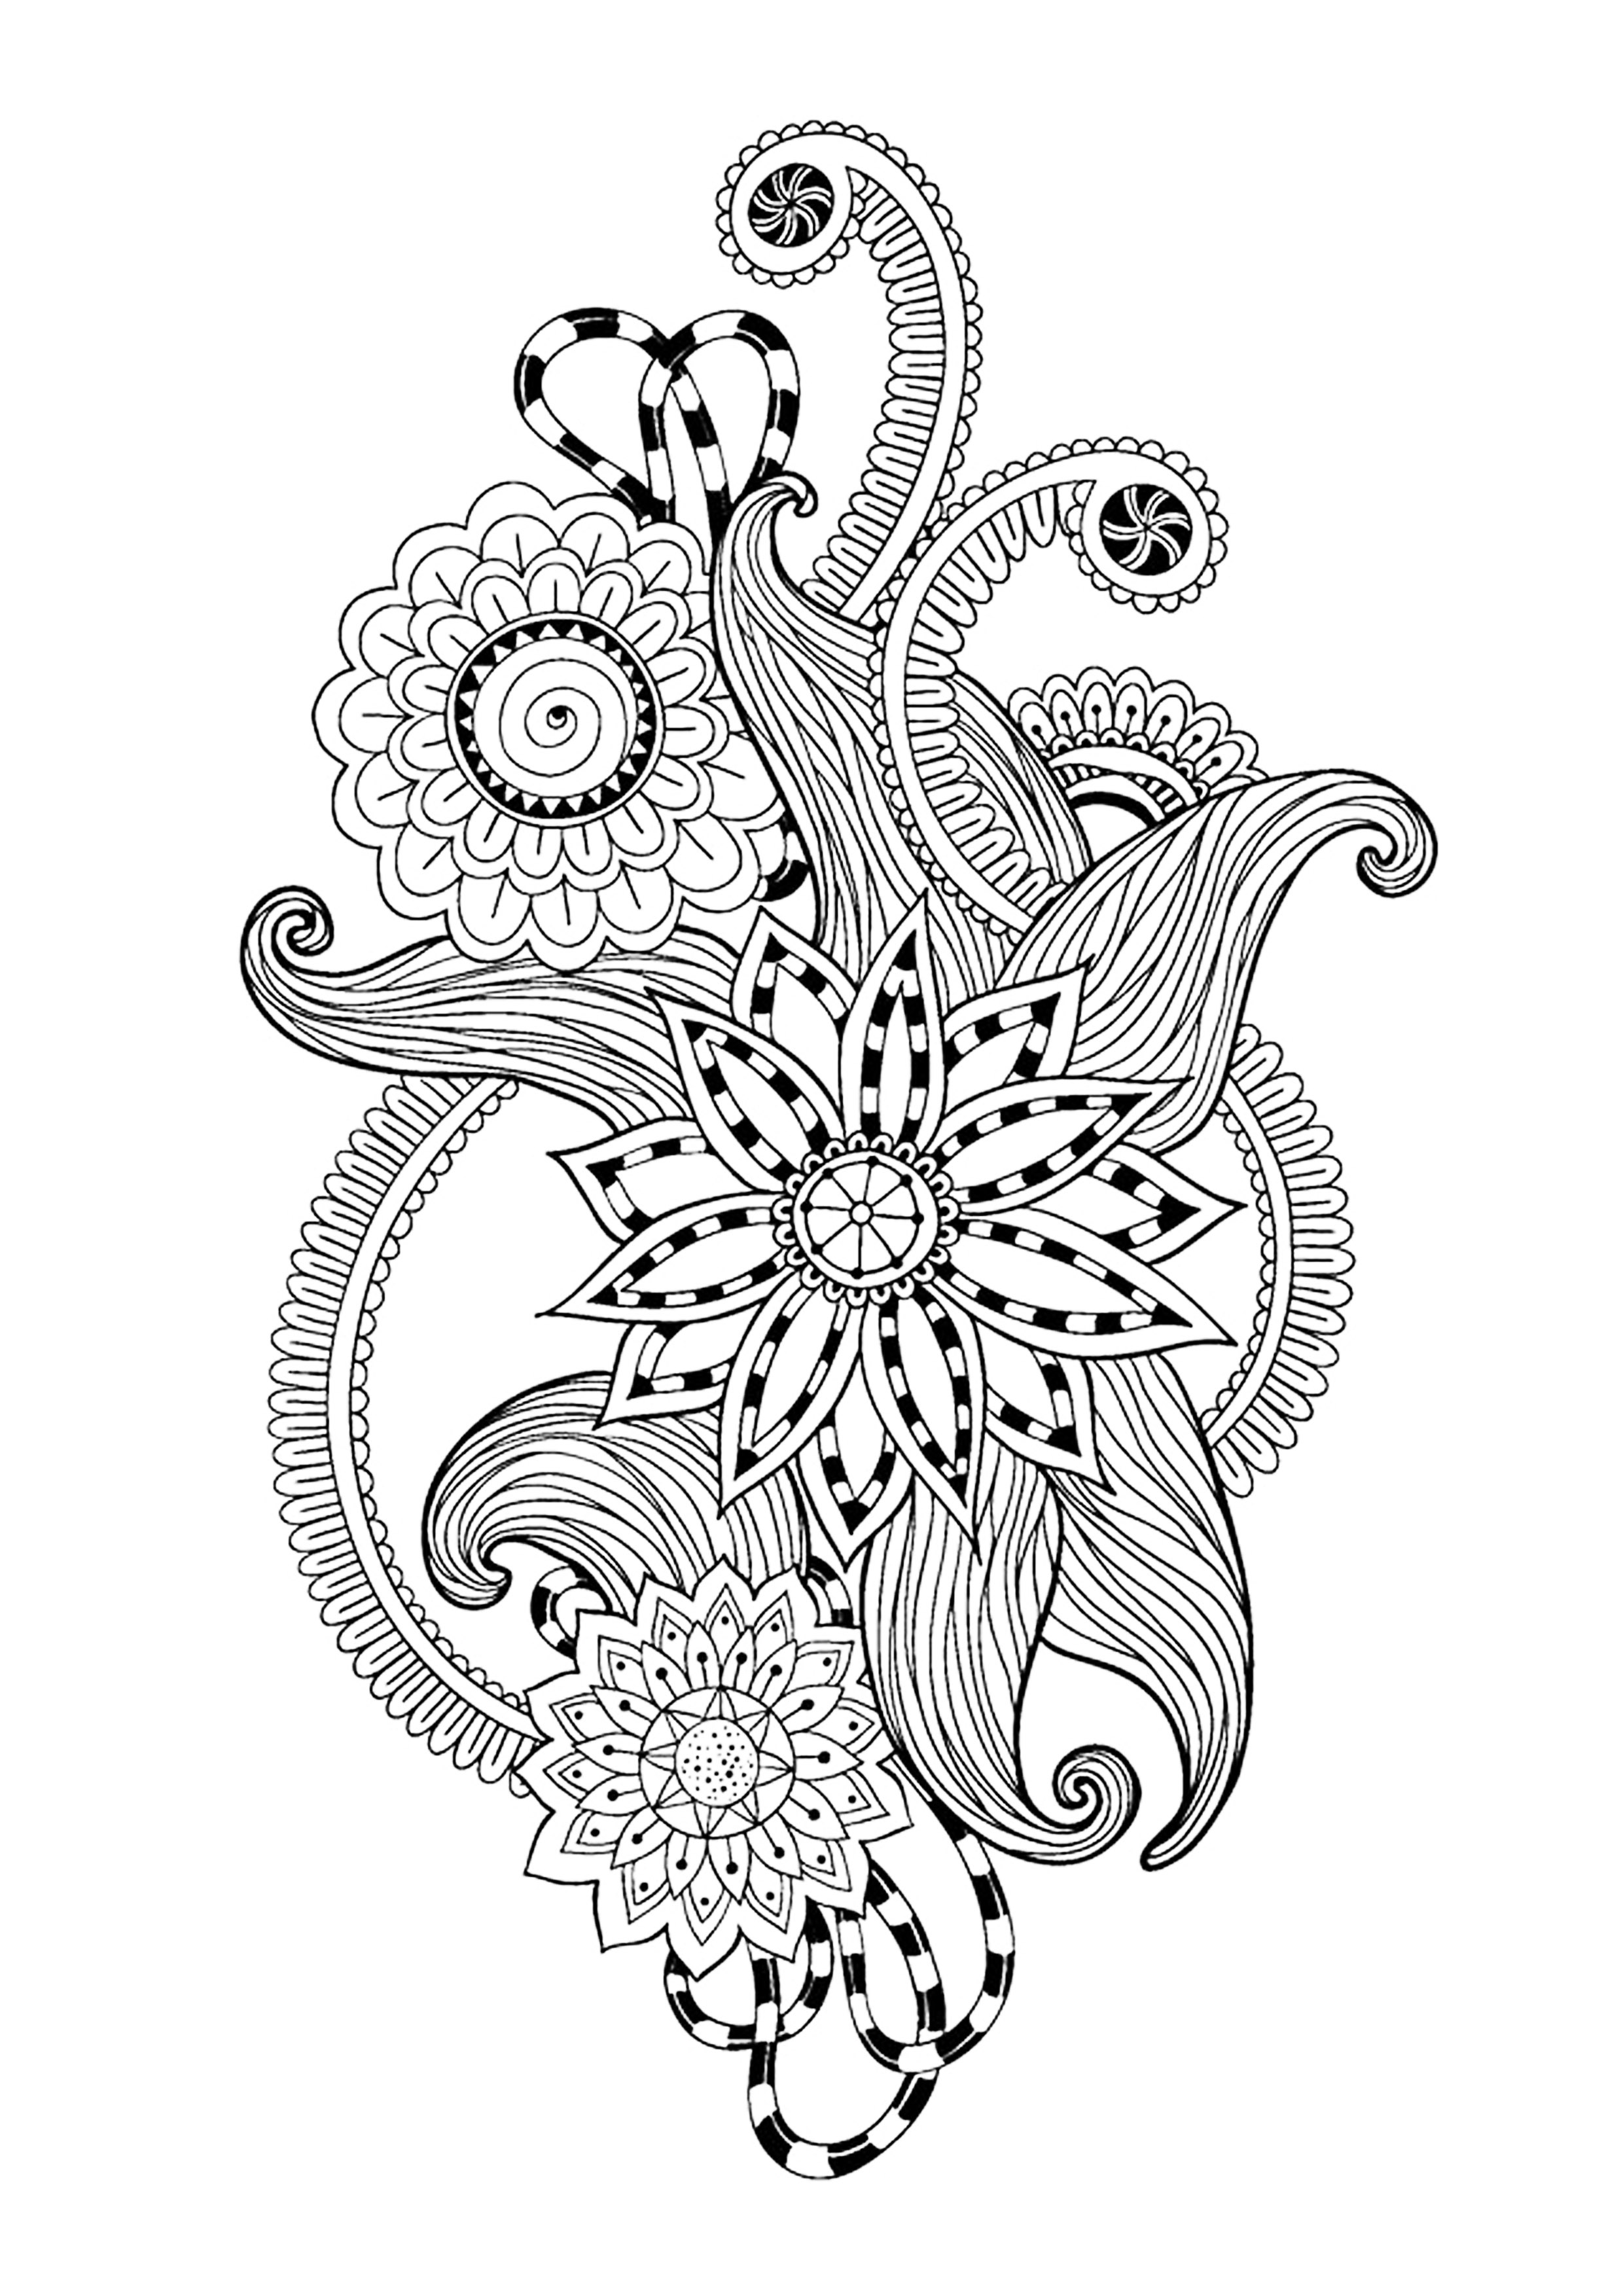 Zen And Anti Stress Coloring Pages For Adults Coloring zen